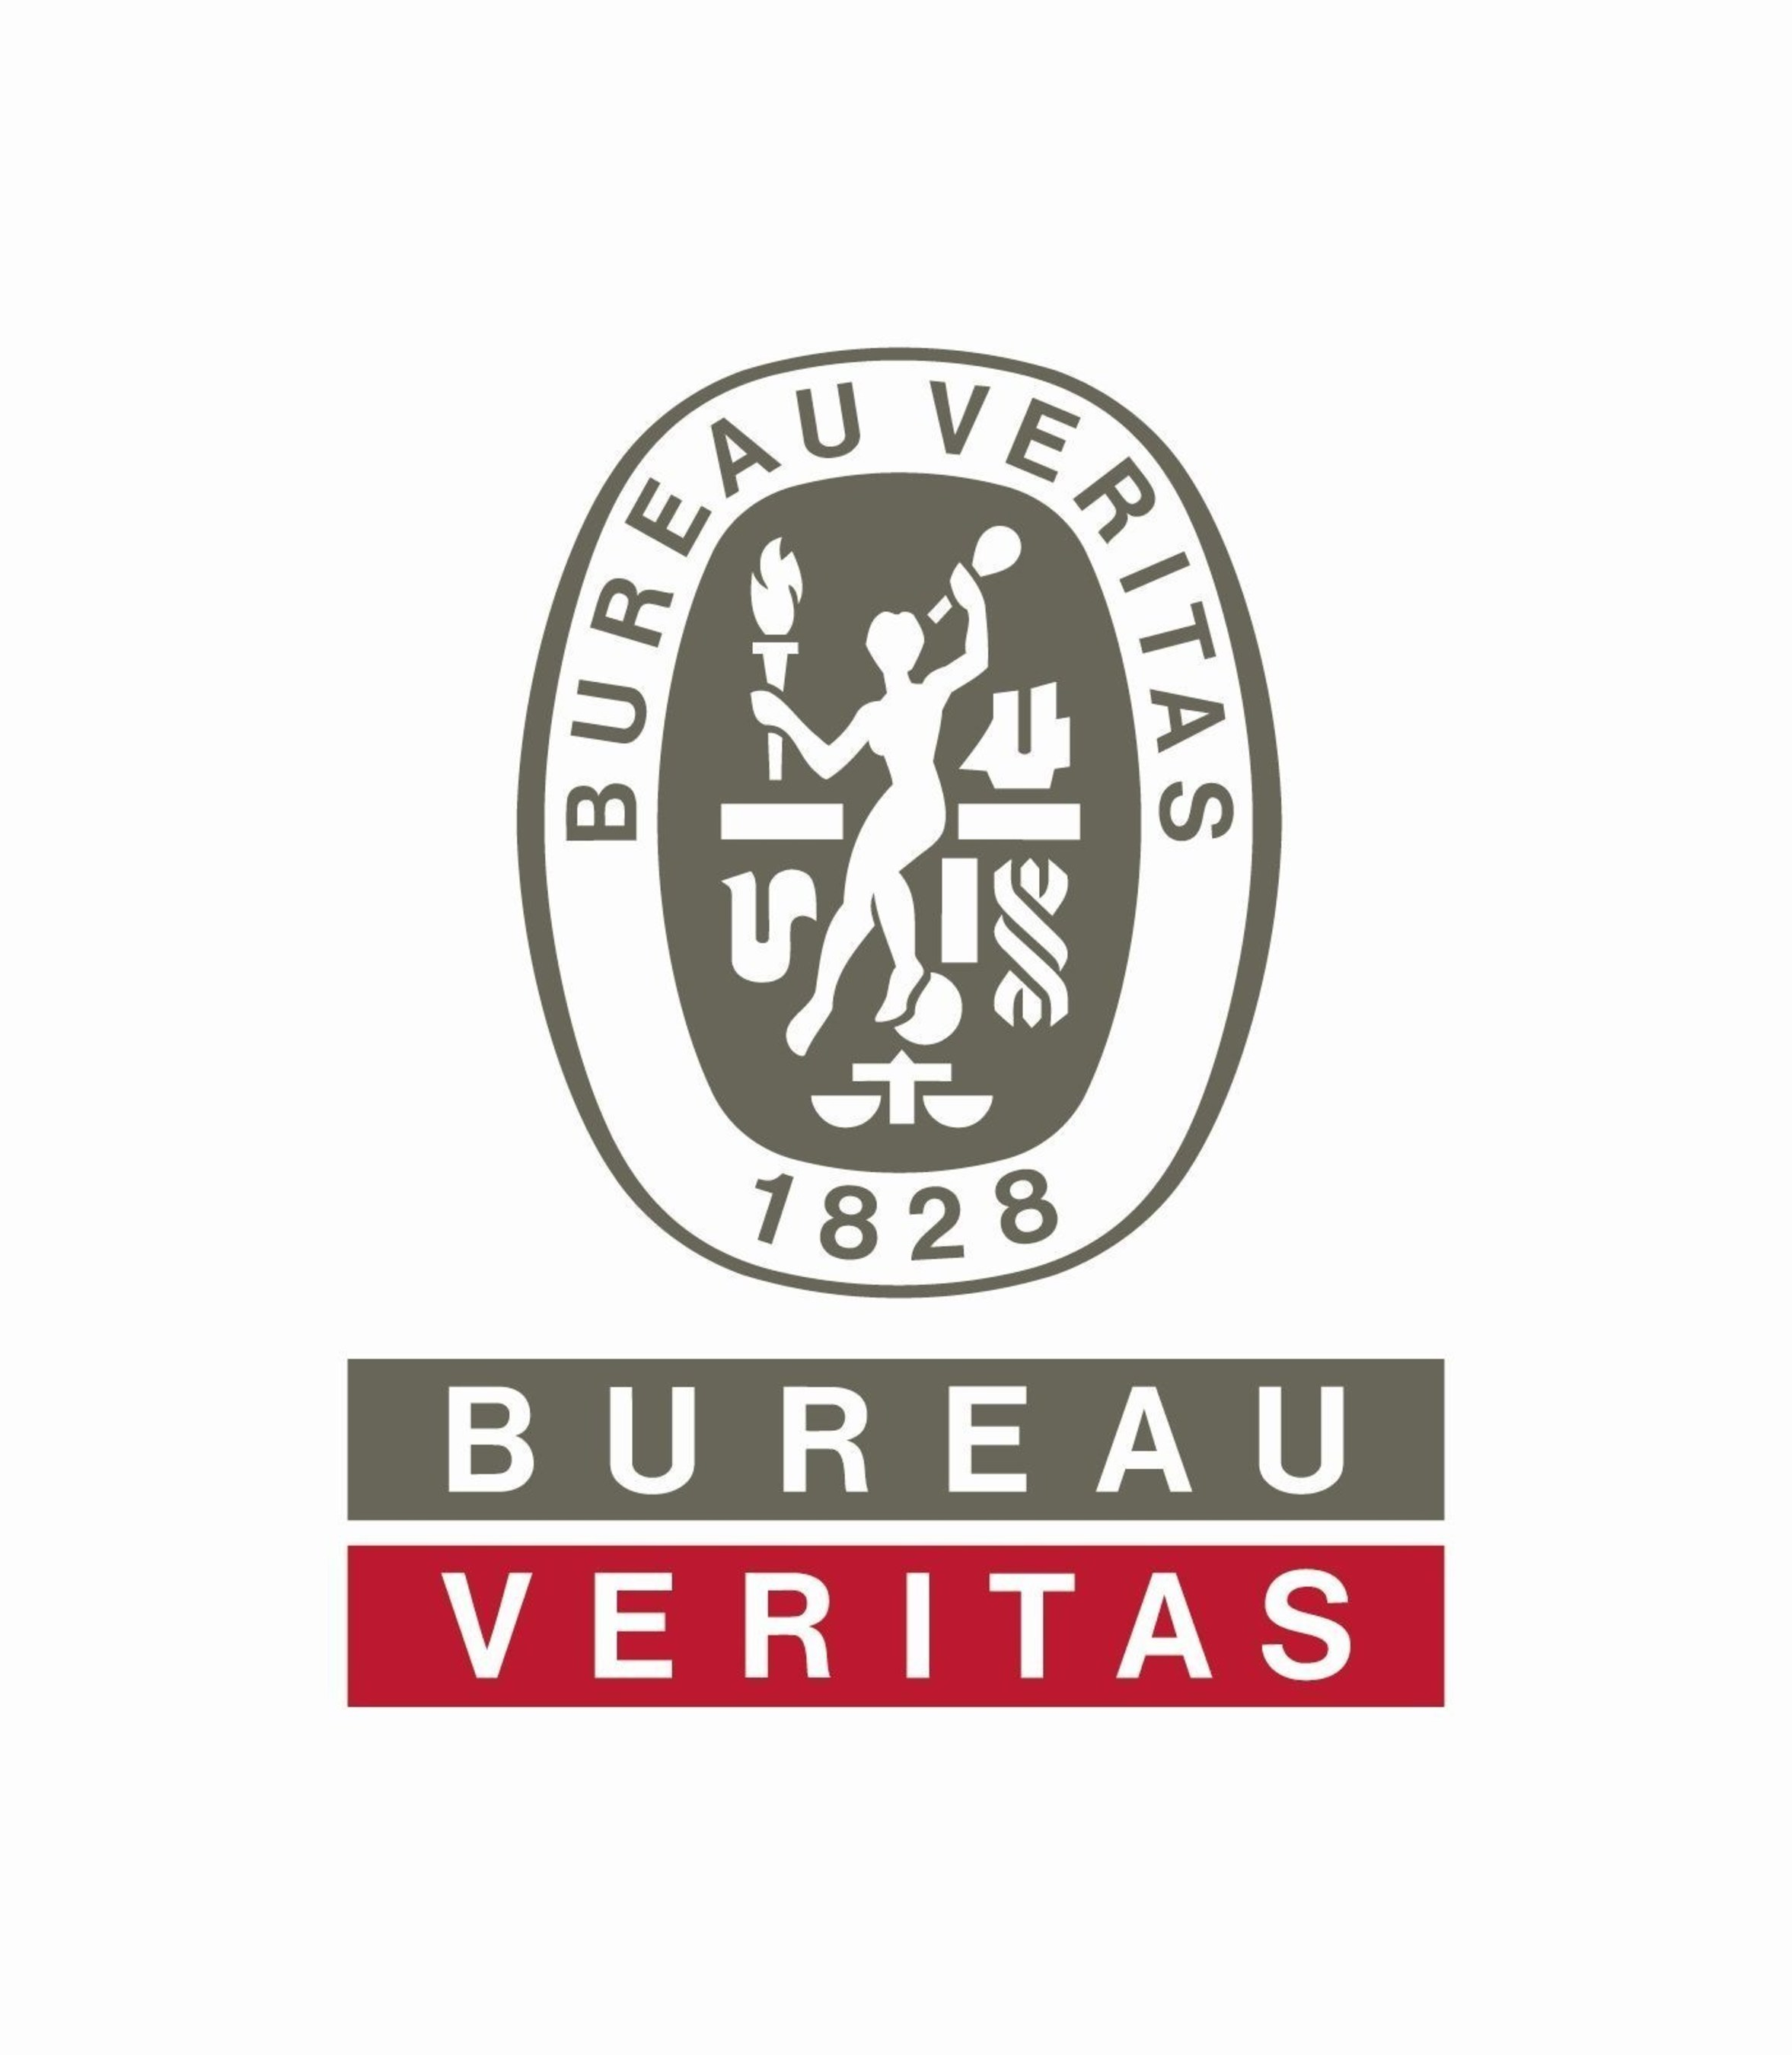 Bureau Veritas to Demonstrate Disruptive Approach to Cybersecurity Testing